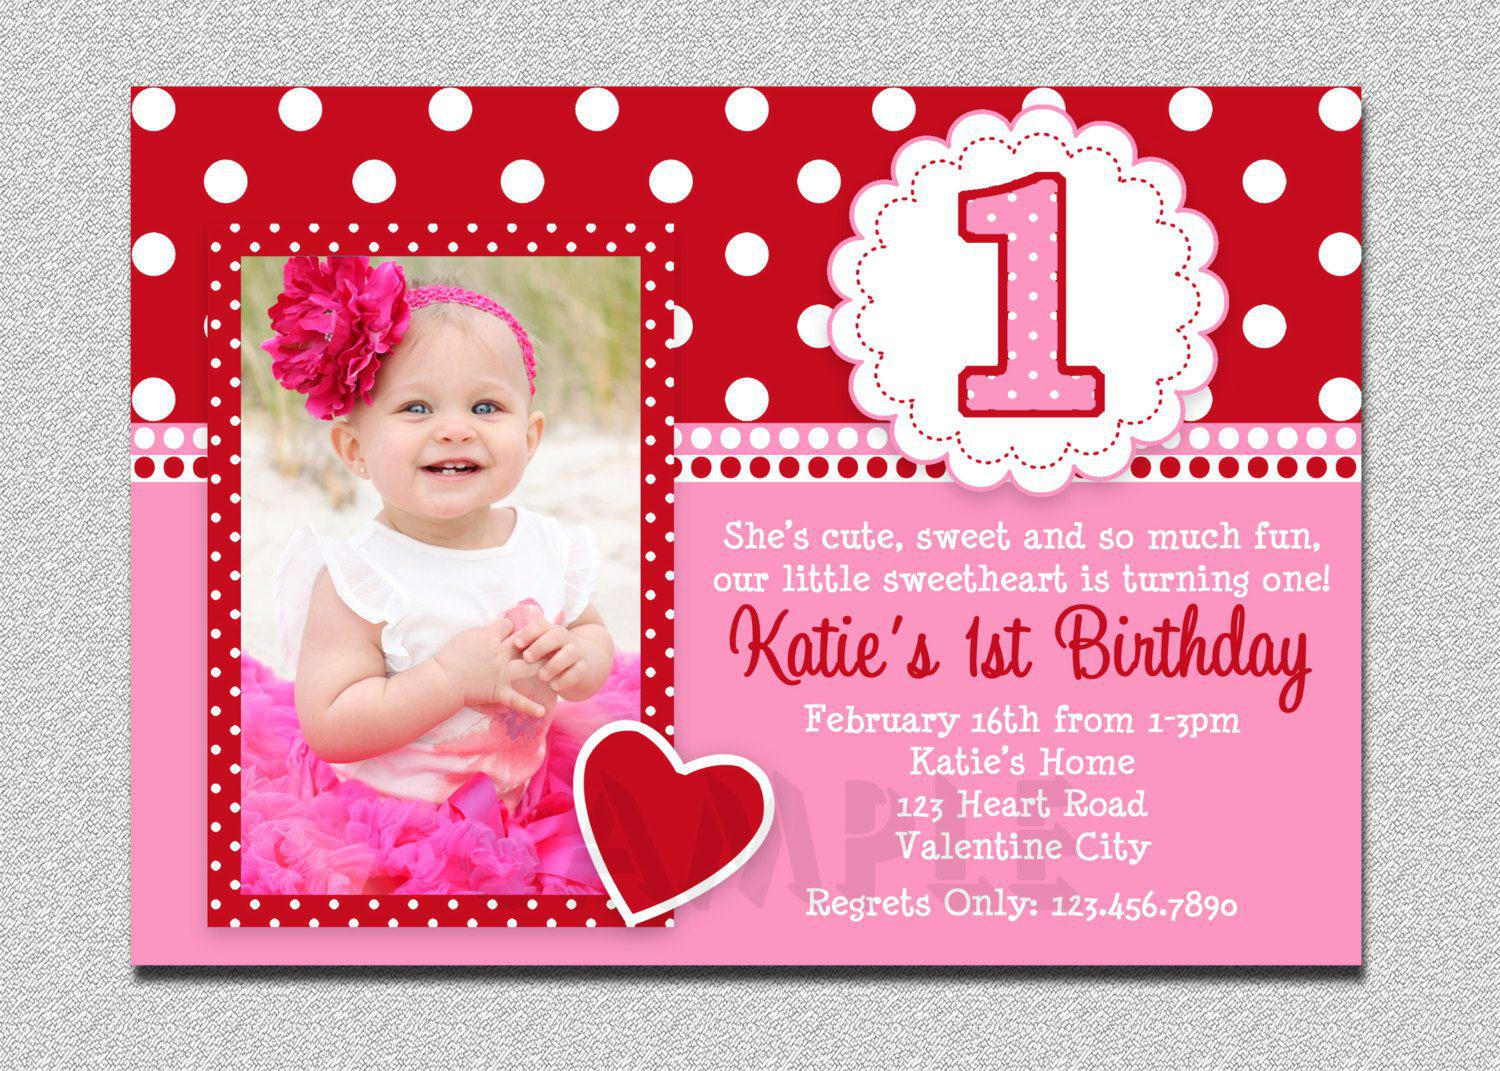 Best First Birthday Invites Printable Sample Templates - 1st birthday invitation wording by a baby